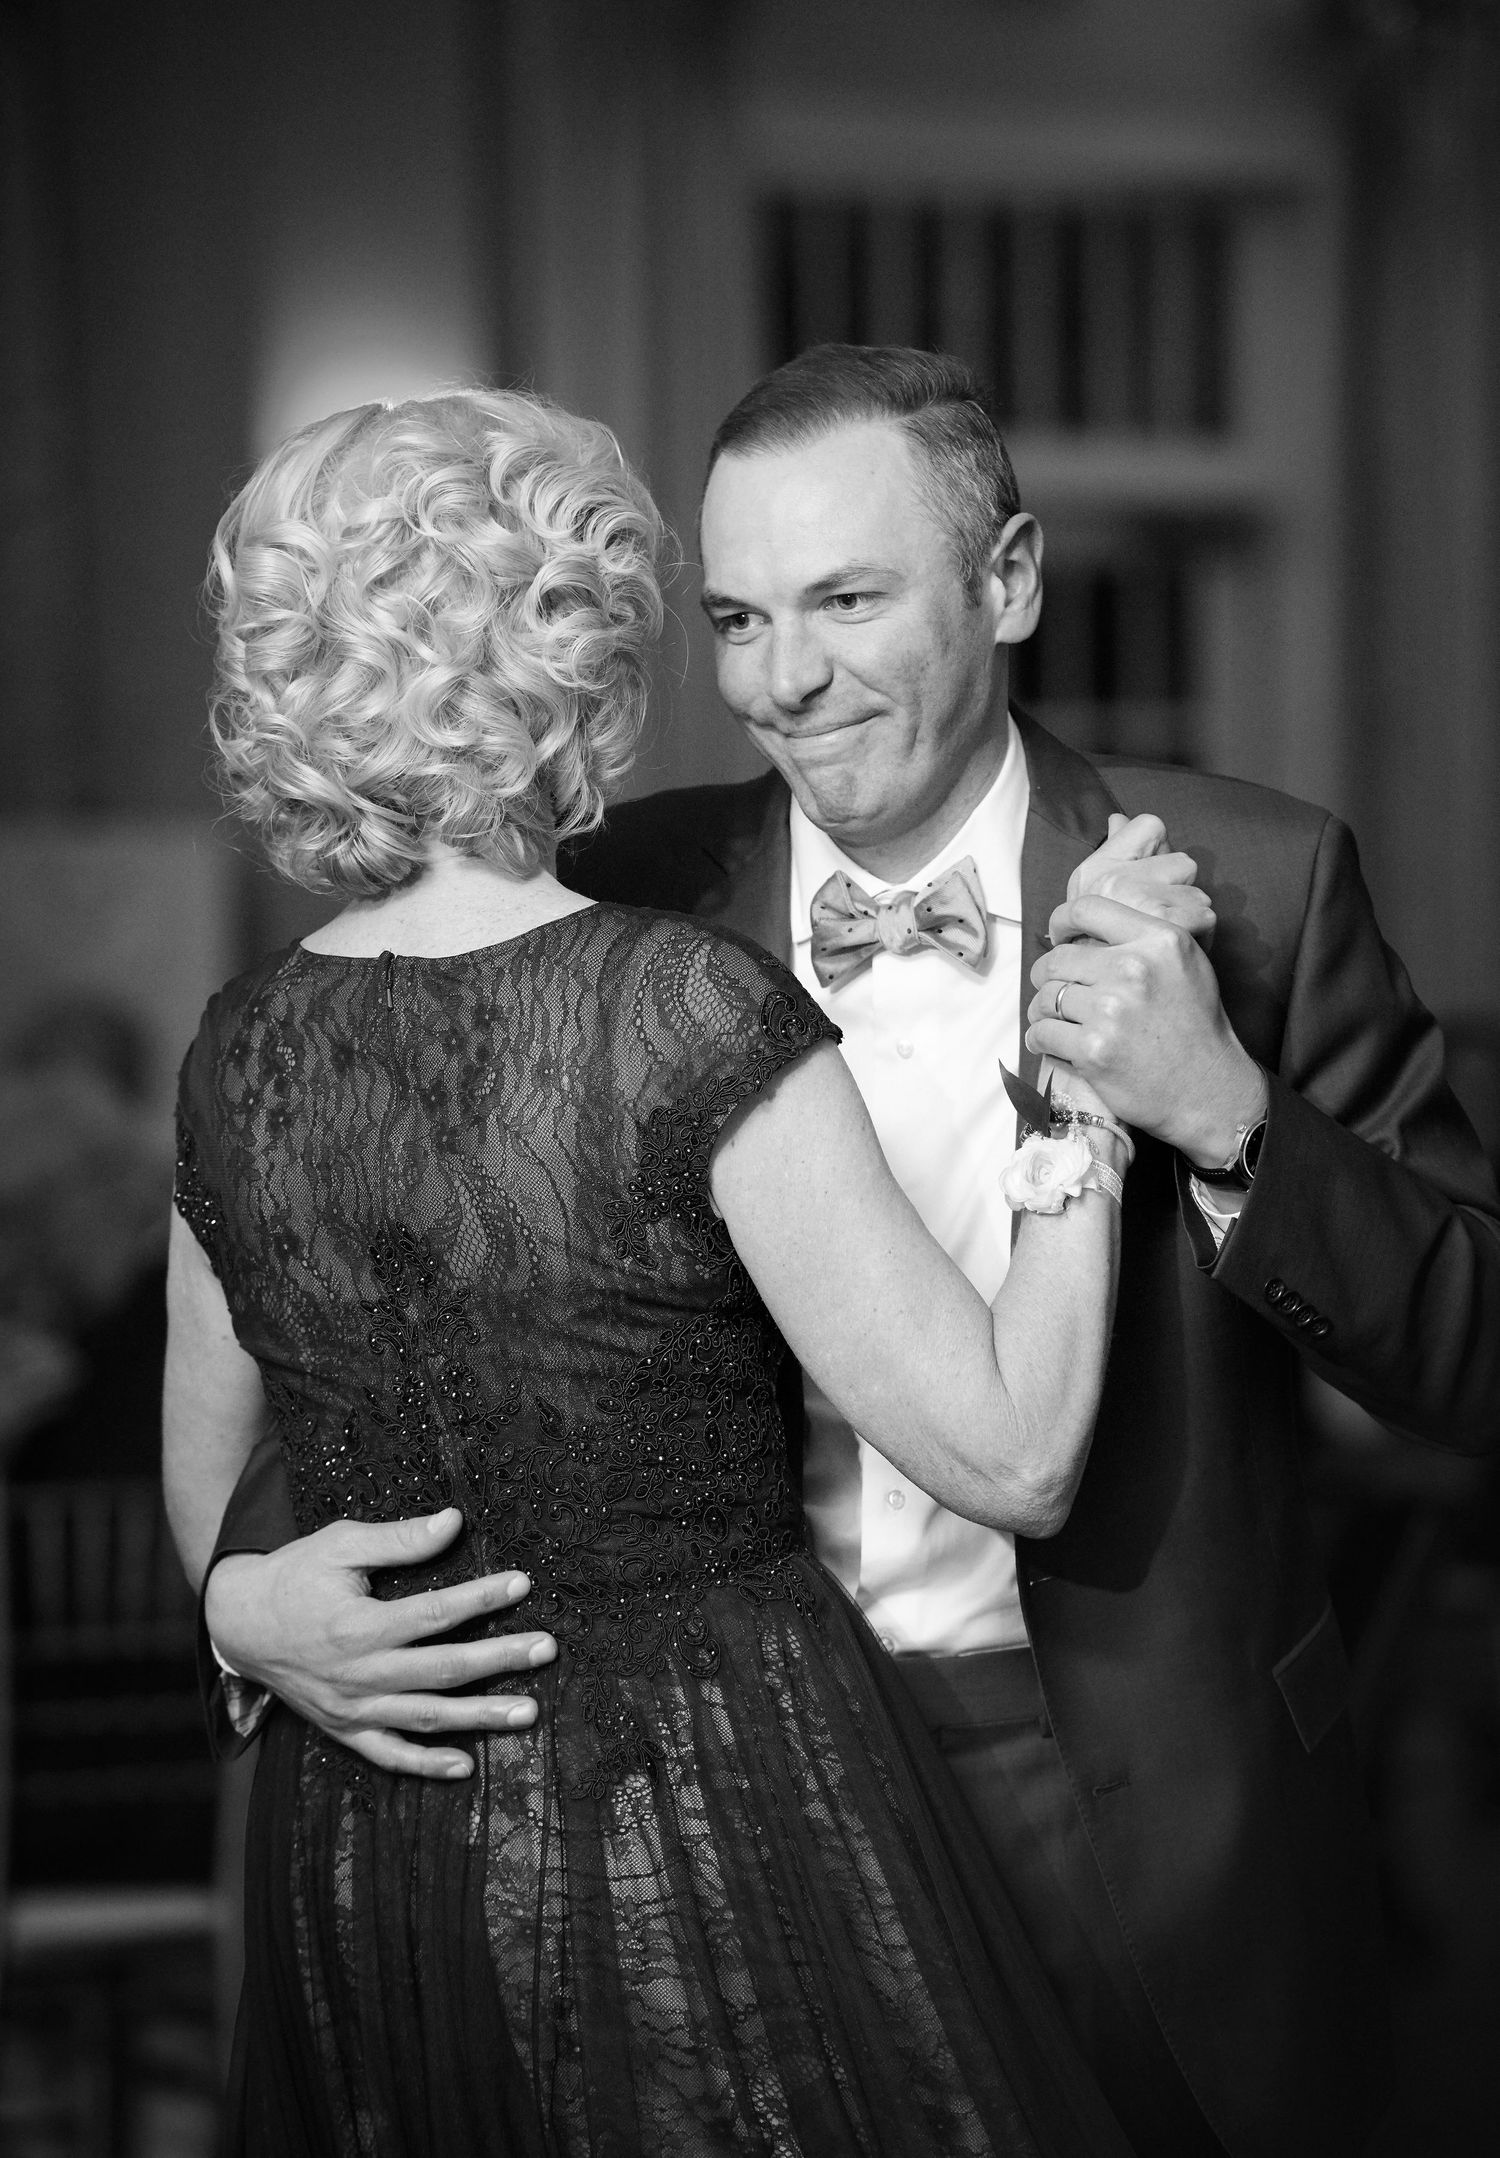 mother son dance during reception at Belle Voir Manor